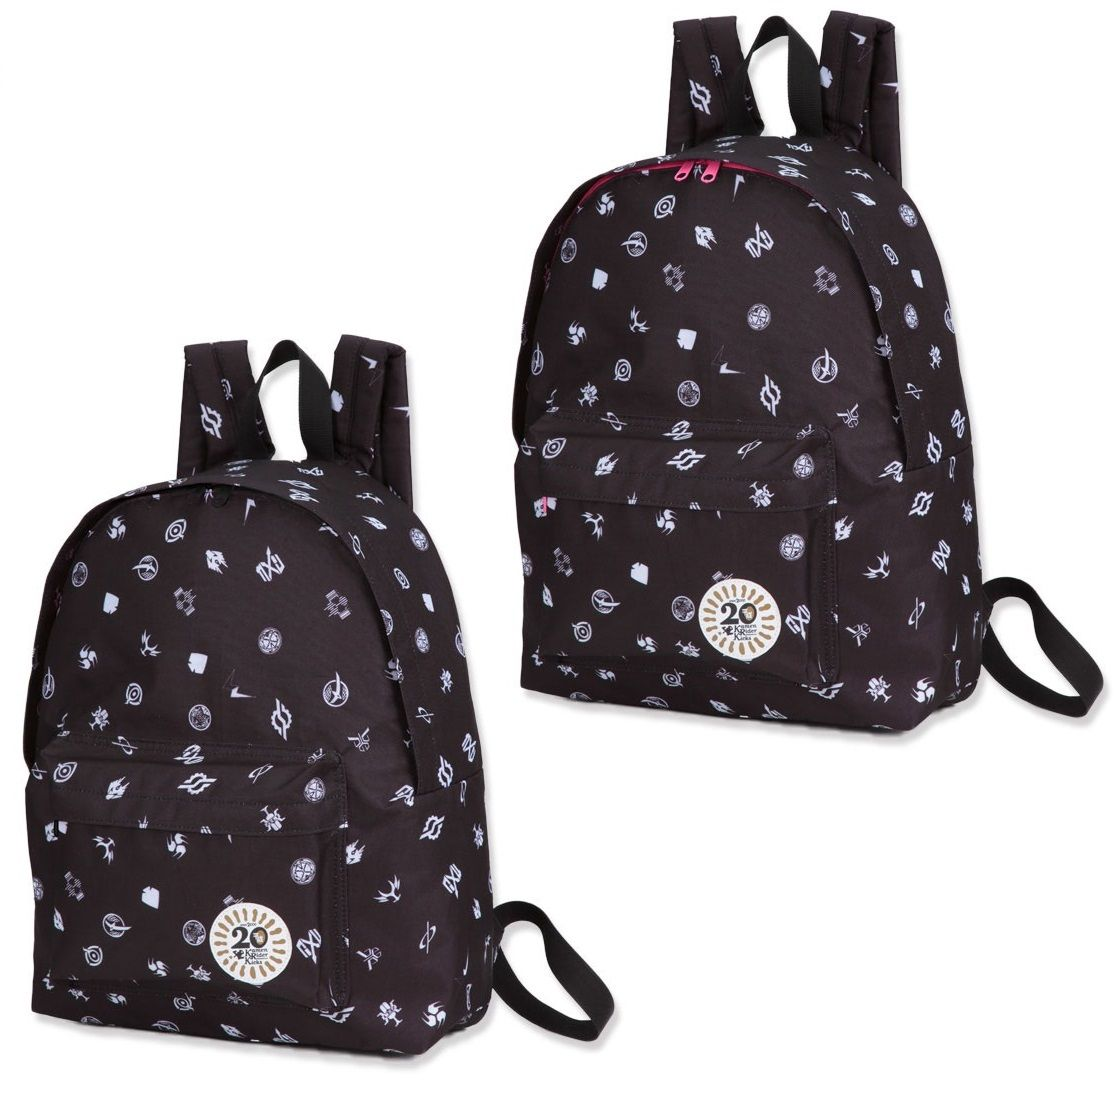 HEISEI RIDER 20th anniversary Backpack